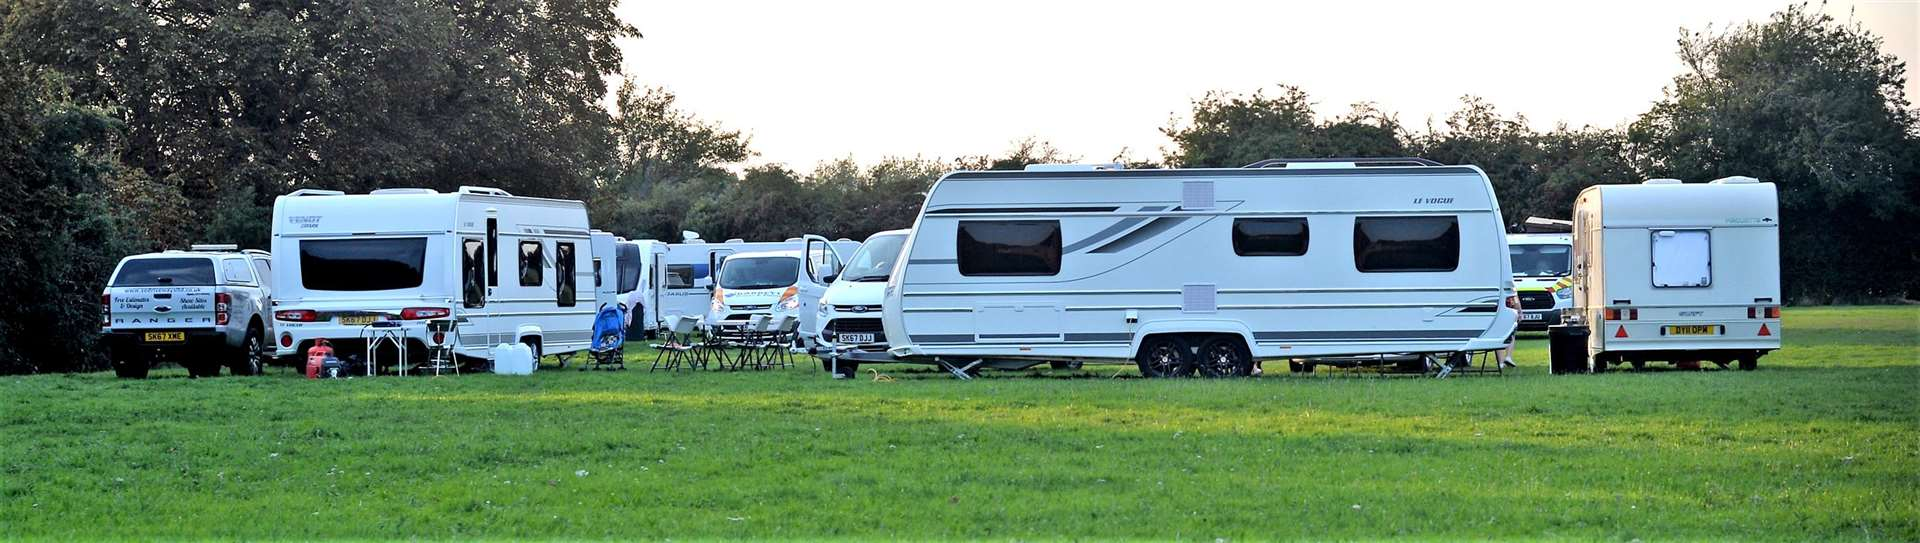 Travellers set up camp at St Felix Middle School, Fordham Road, Newmarket (4184844)